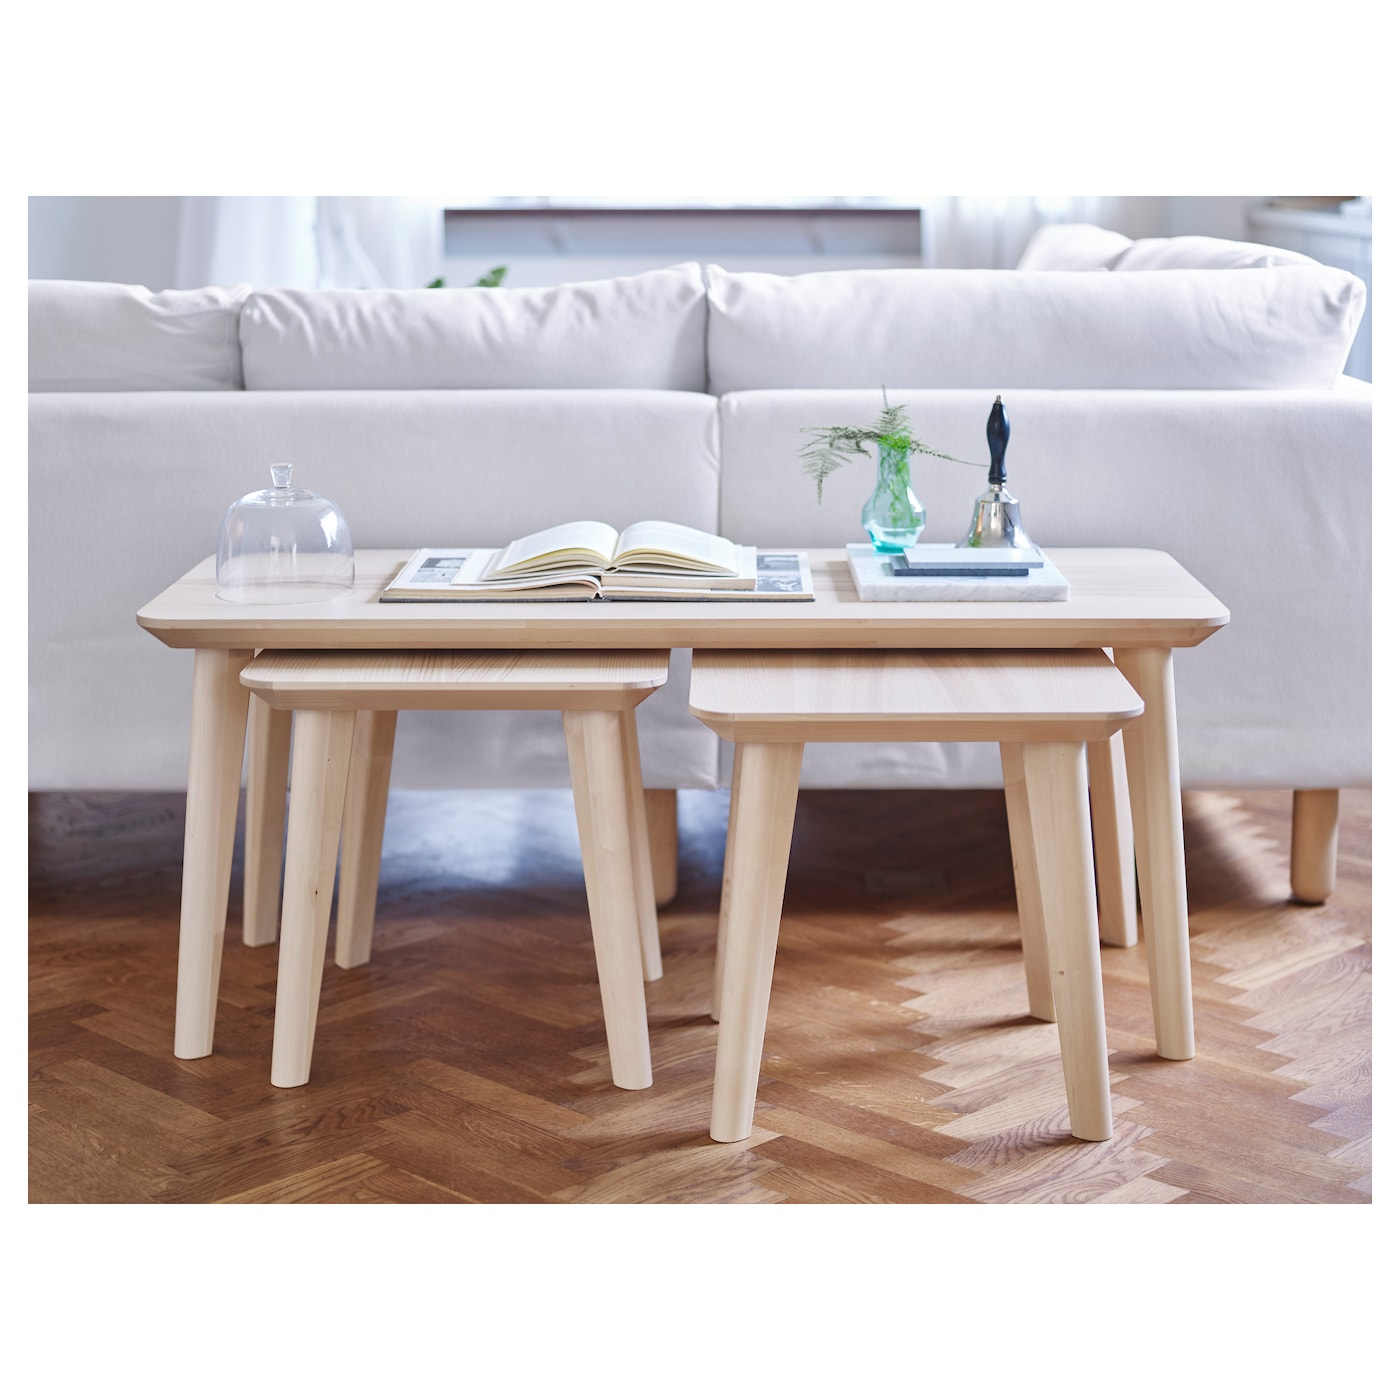 IKEA LISABO table basse Facile à monter, chaque pied disposant d'une fixation unique.